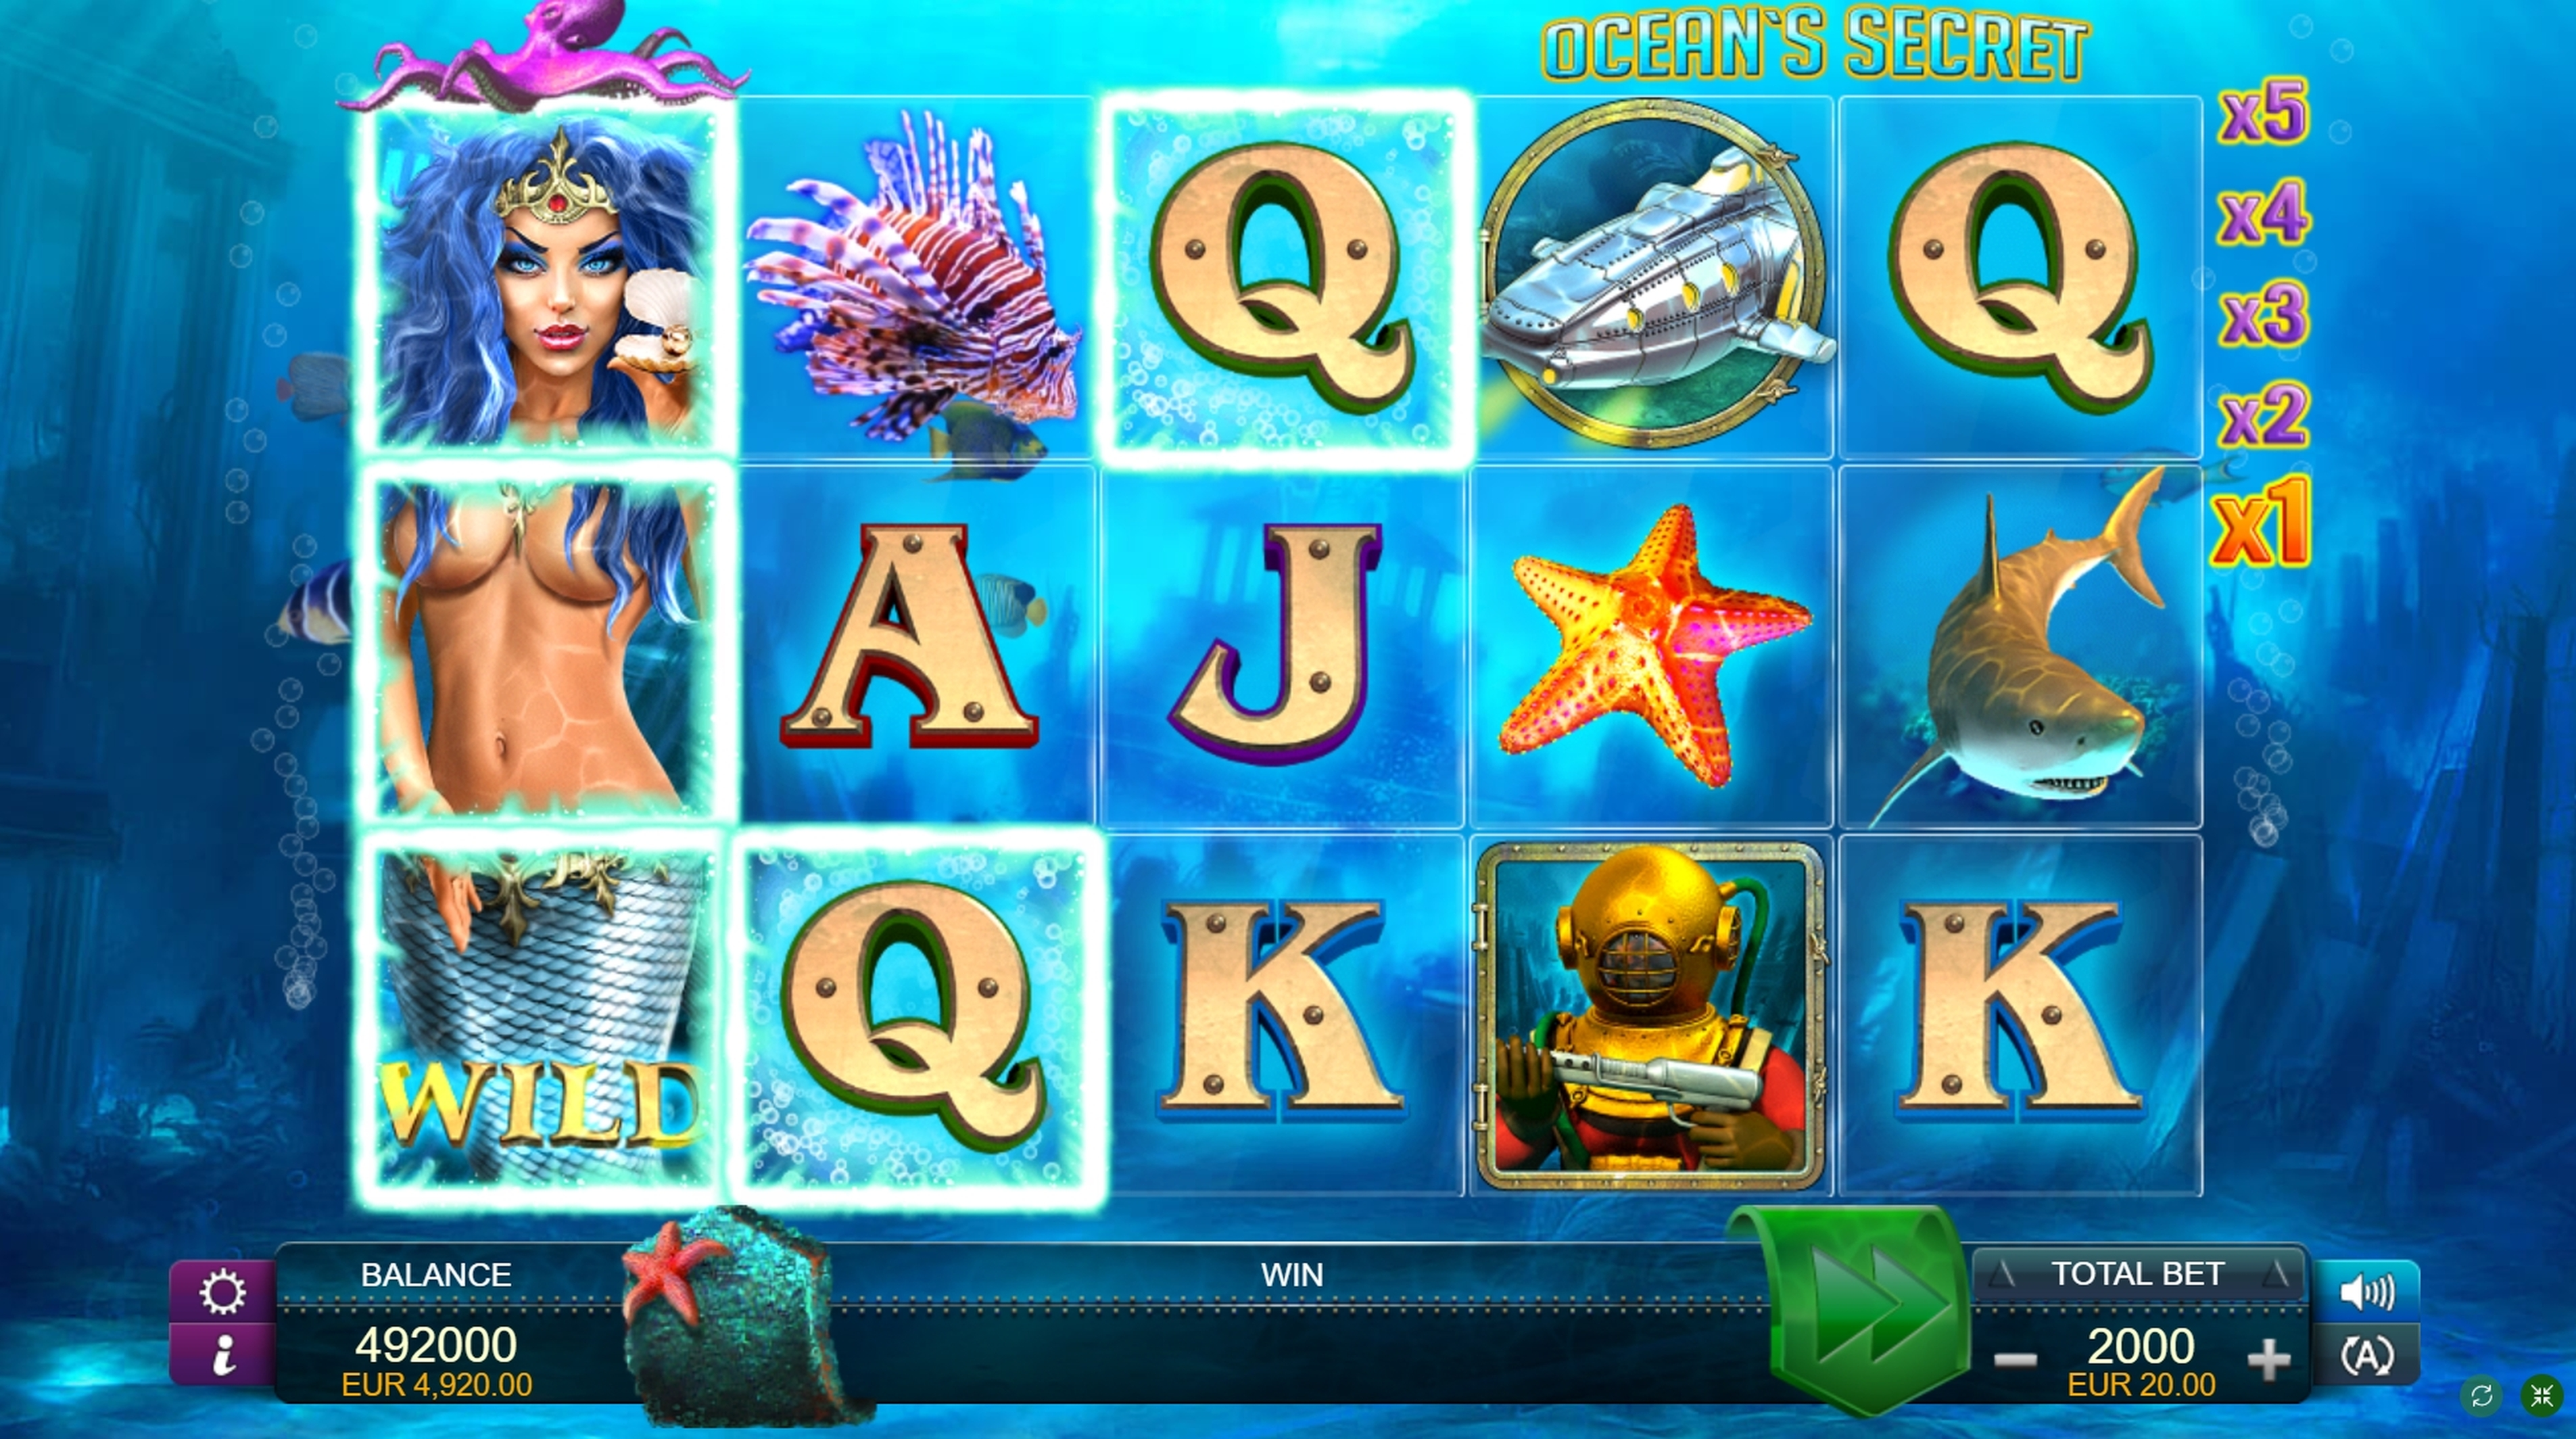 Win Money in Ocean's Secret Free Slot Game by FUGA Gaming